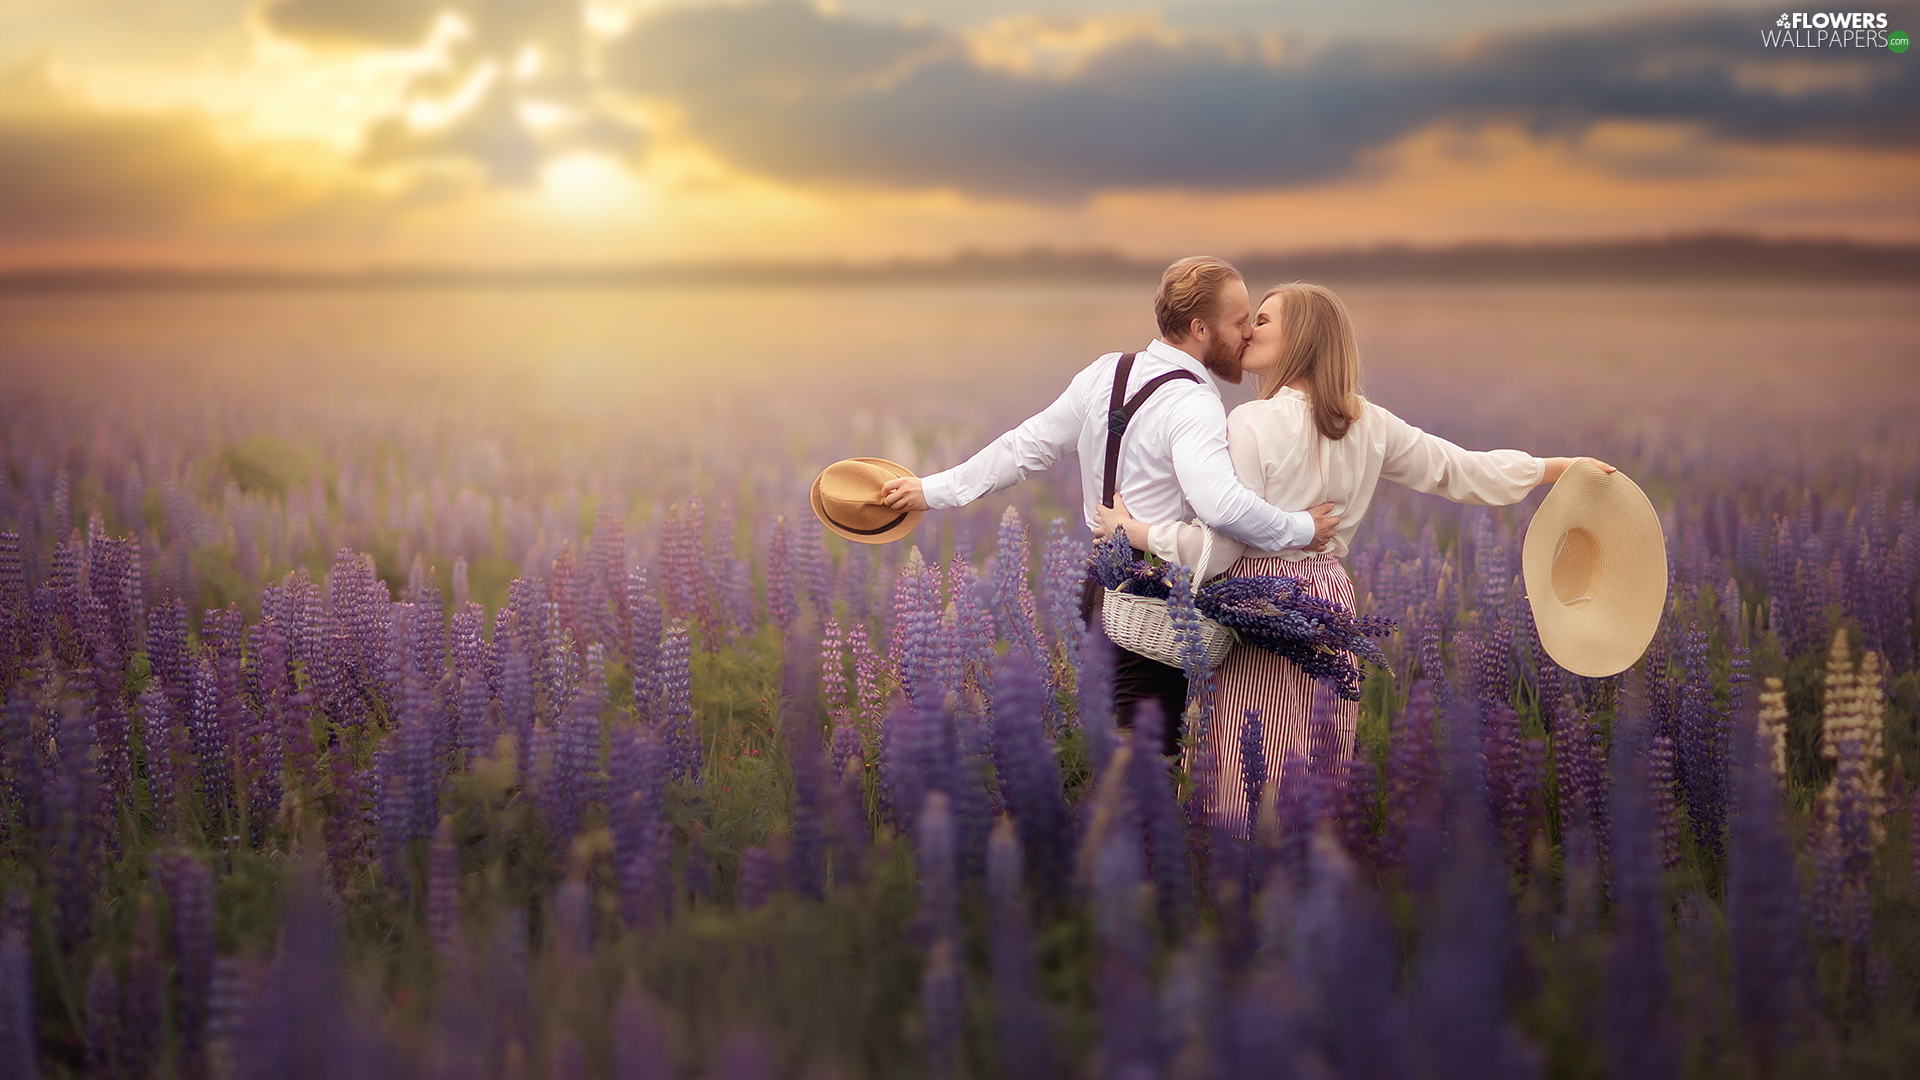 Women, kiss, lupine, a man, Meadow